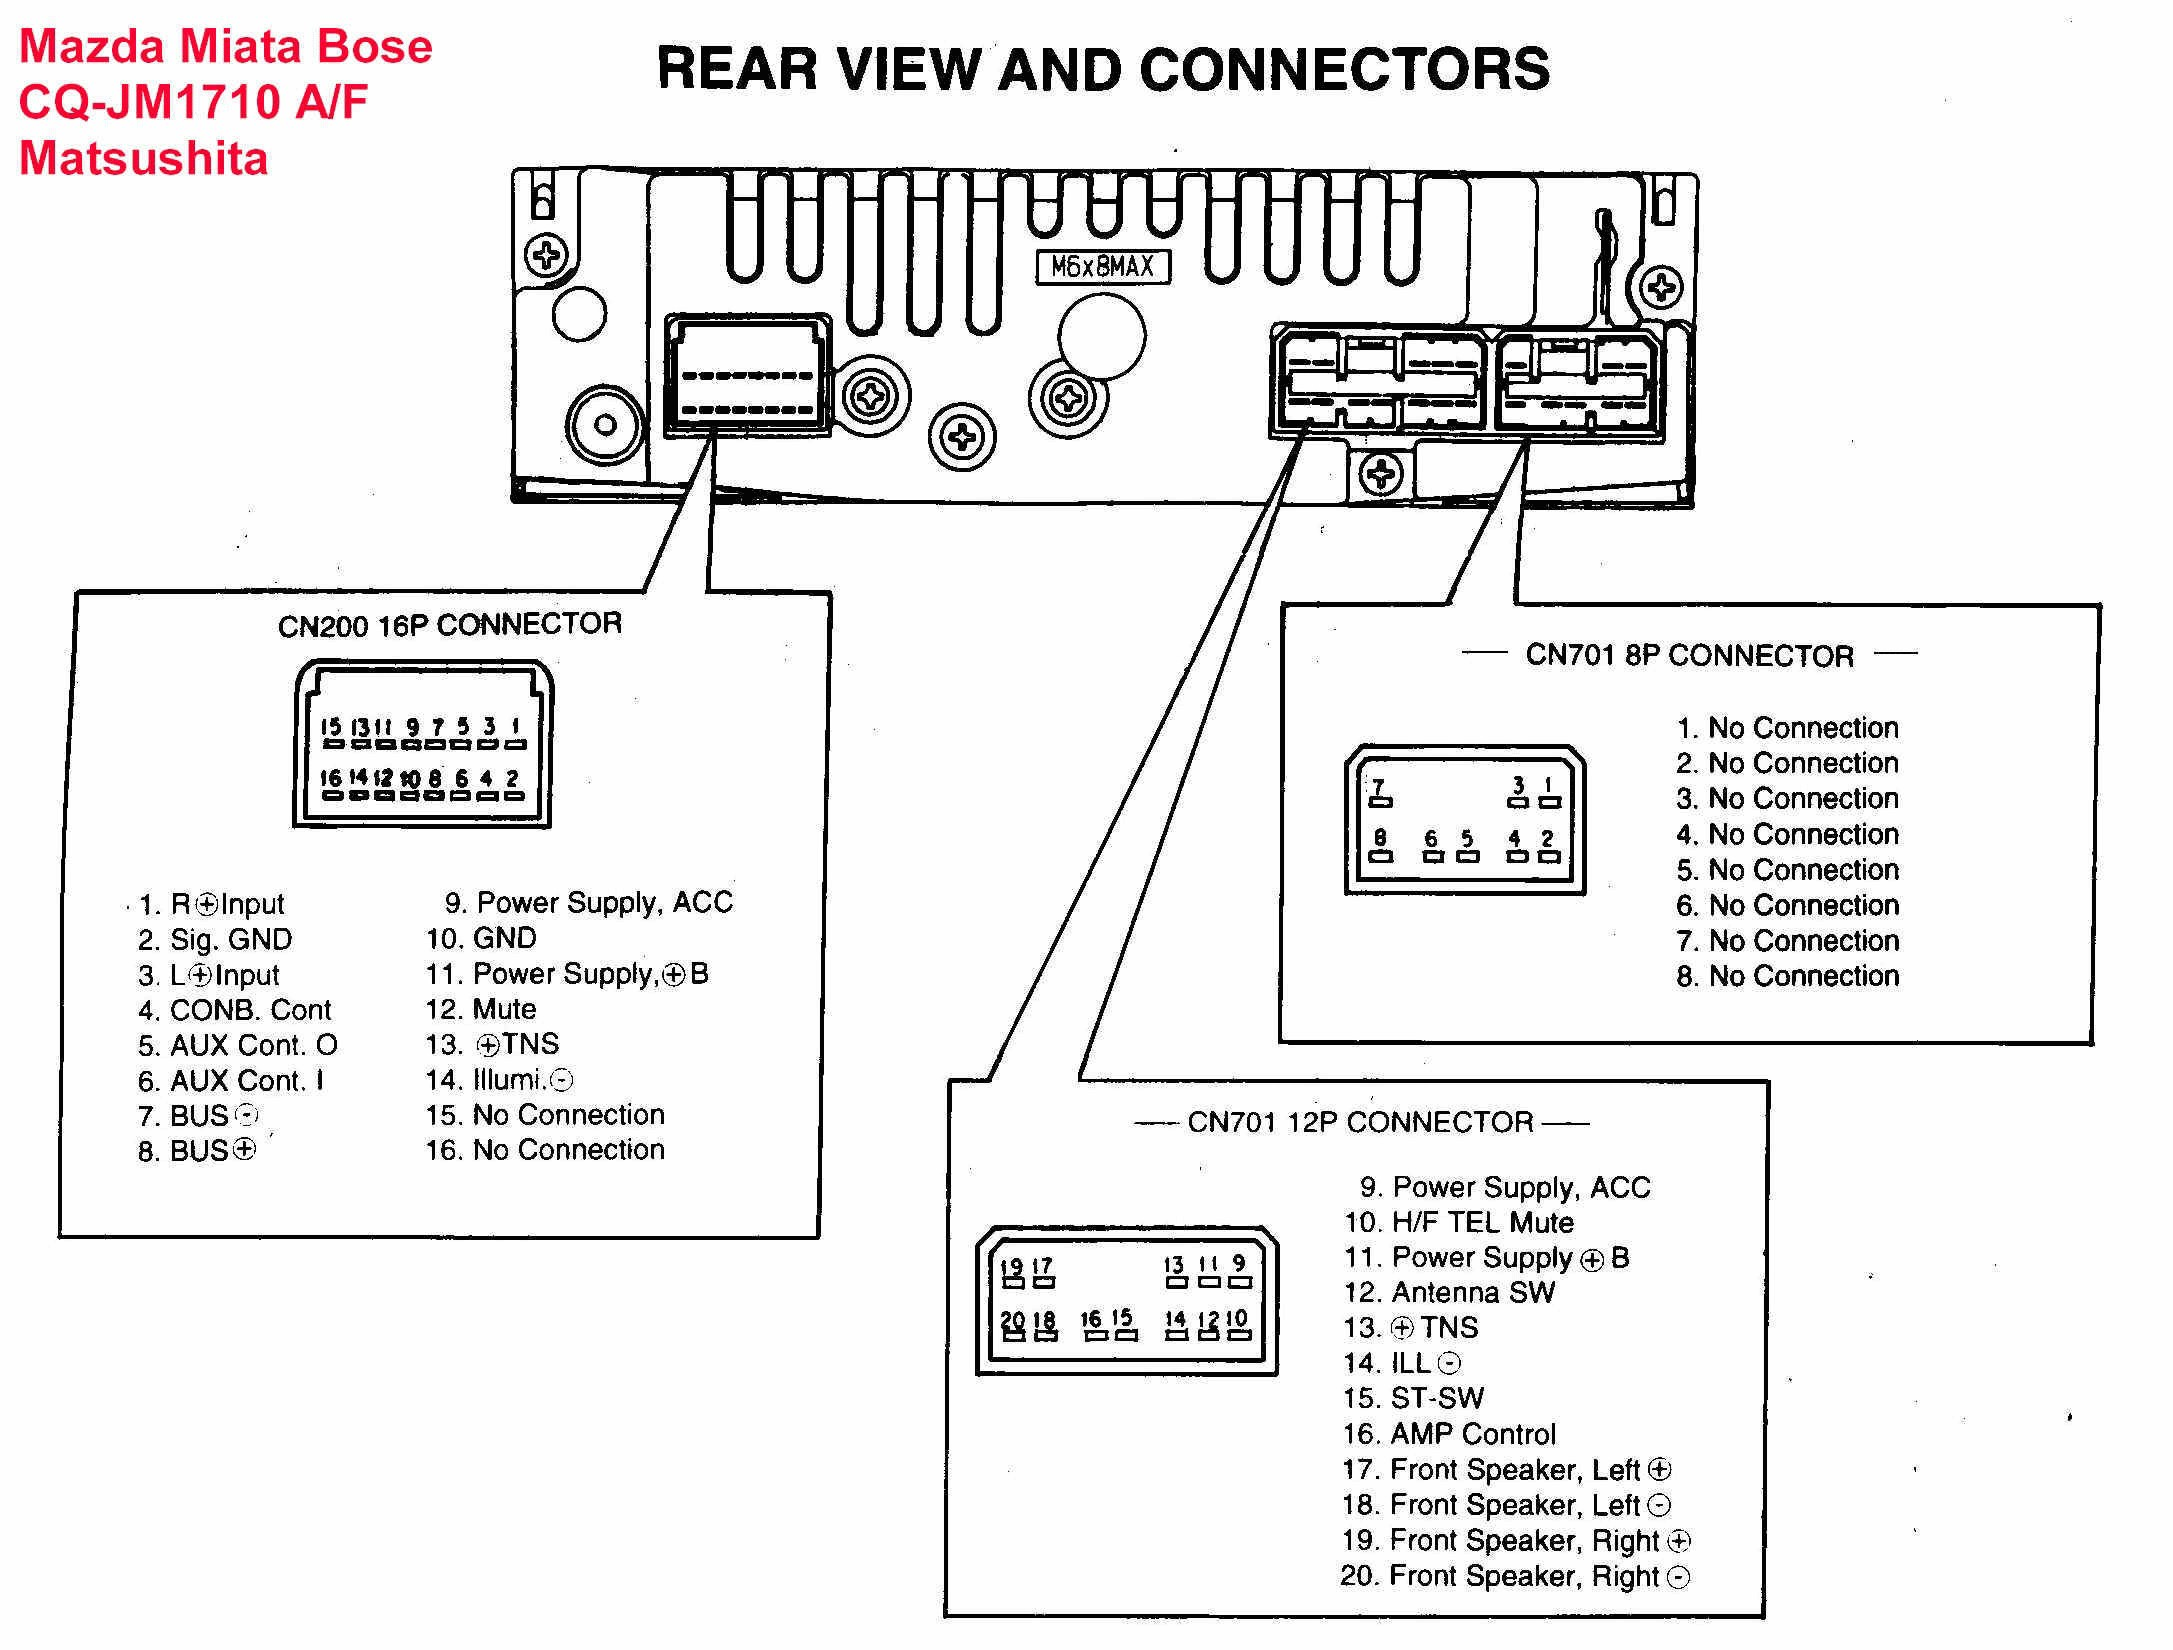 2003 nissan maxima bose radio wiring diagram diagram base website wiring  diagram - dutchtorrefactionassociation.eu  dutchtorrefactionassociation.eu: diagram base website full edition